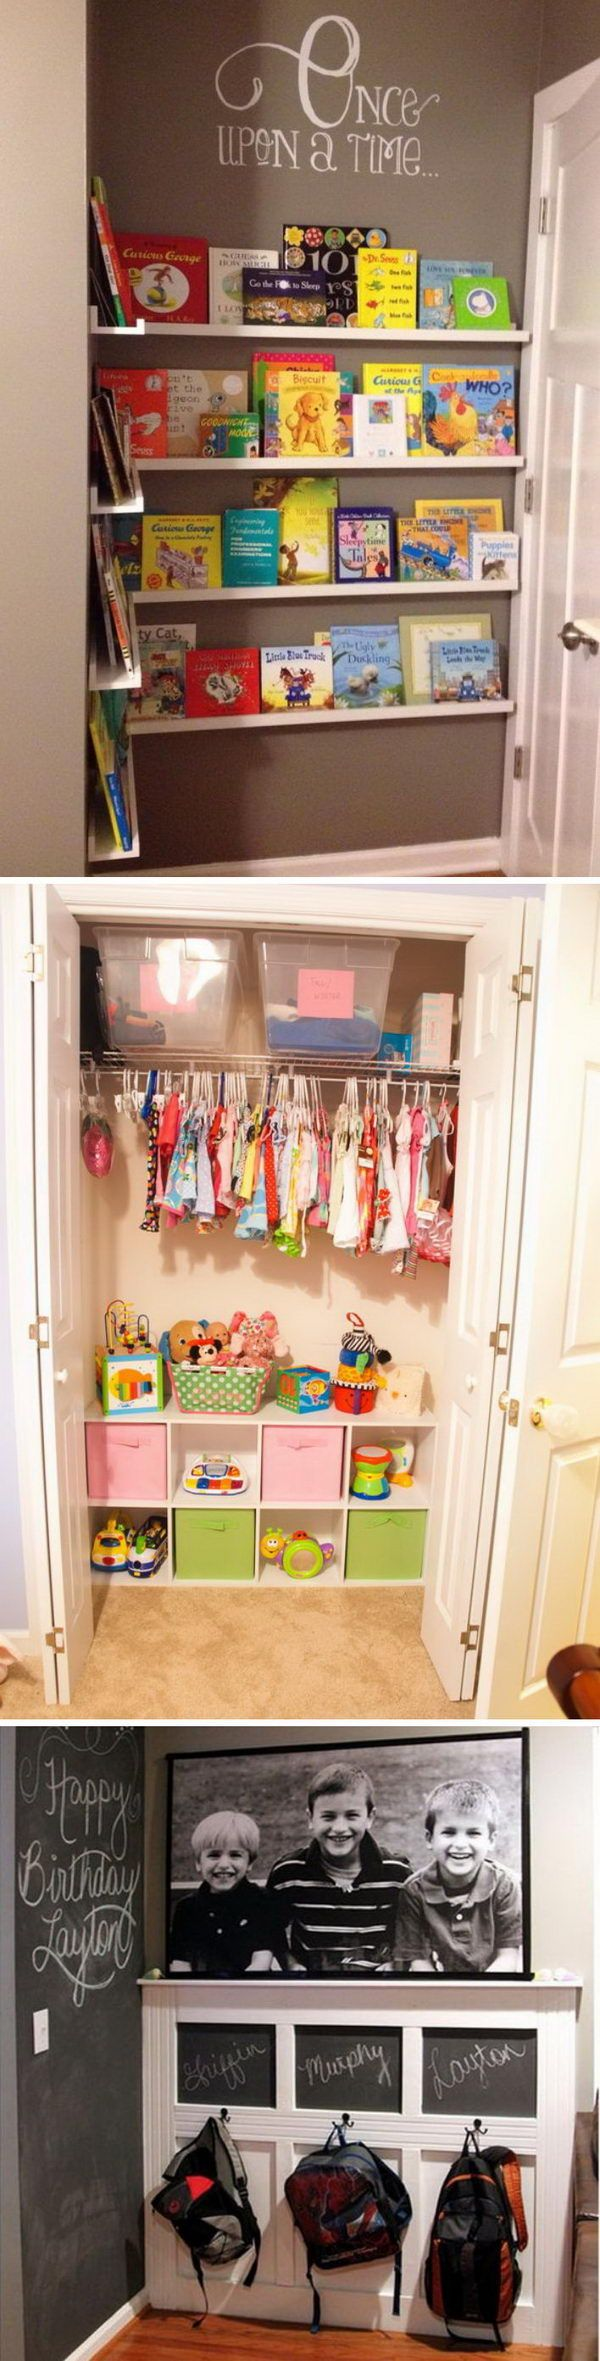 Interior Kids Bedroom Organization Ideas best 25 kids room organization ideas on pinterest bedroom 30 creative storage to organize 2017